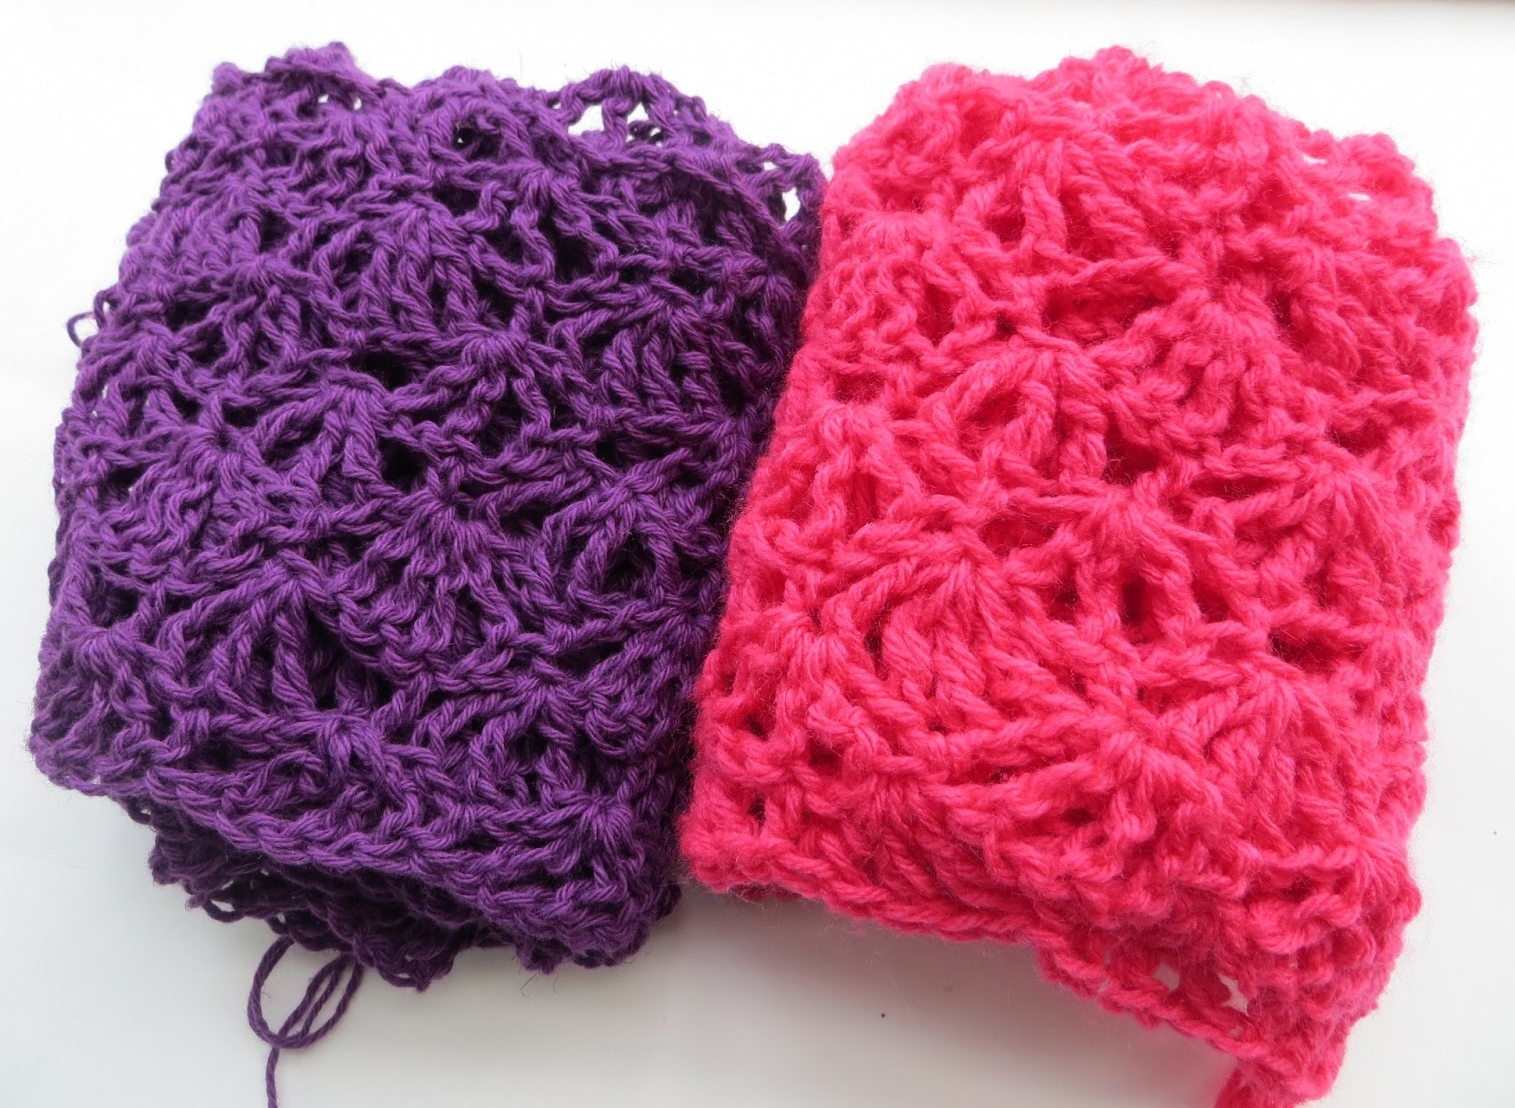 Free Crochet Patterns With Instructions : Crochet Dreamz: Alana Lacy Scarf, Free Crochet Pattern